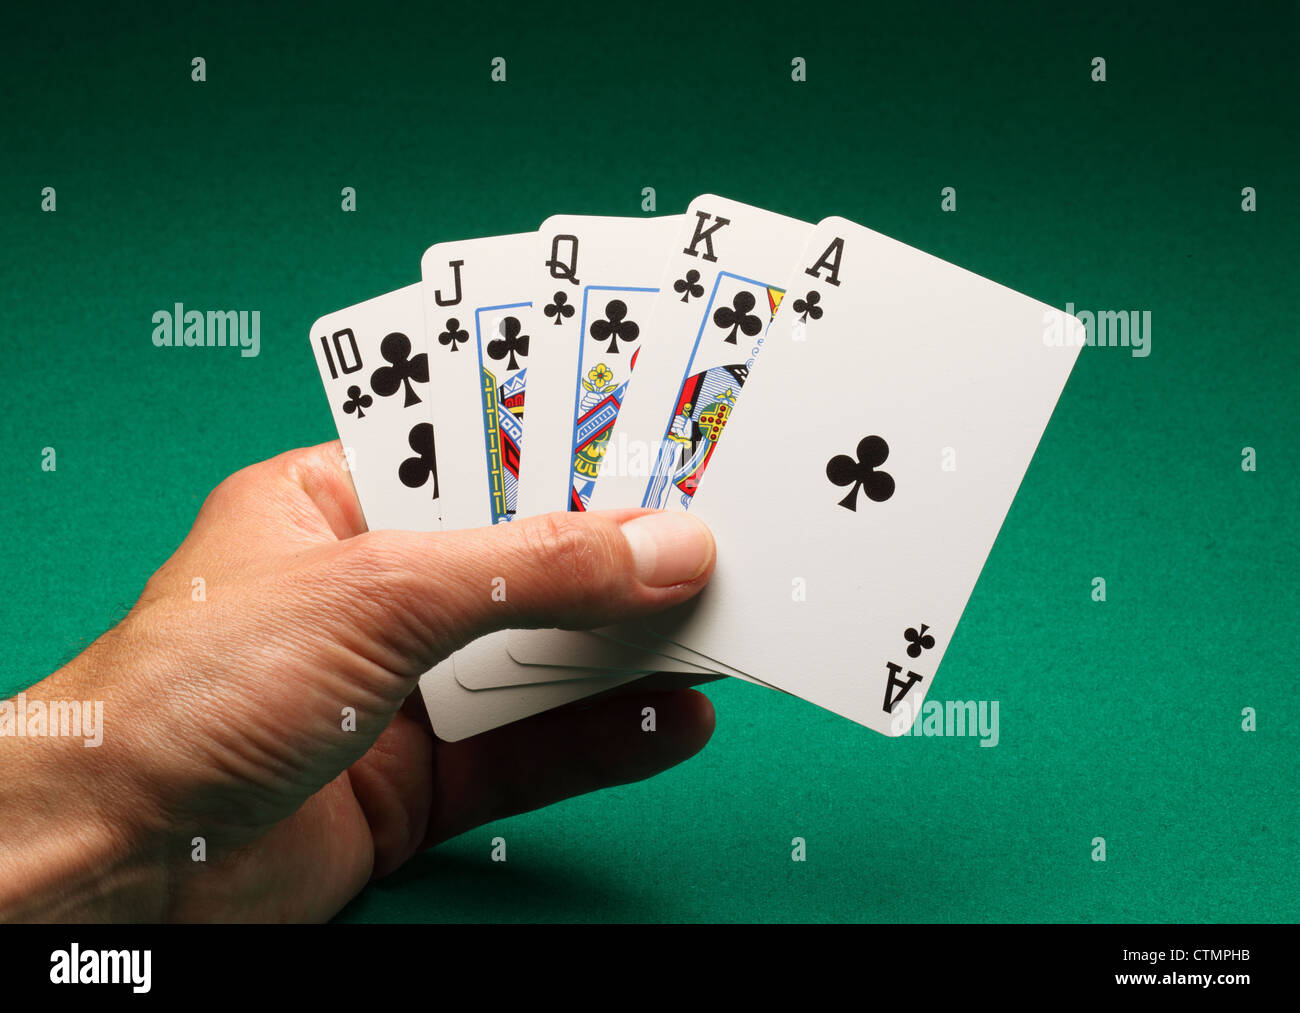 A man's hand holding playing cards on a green table. A Royal Flush of clubs in the game of Poker - Stock Image